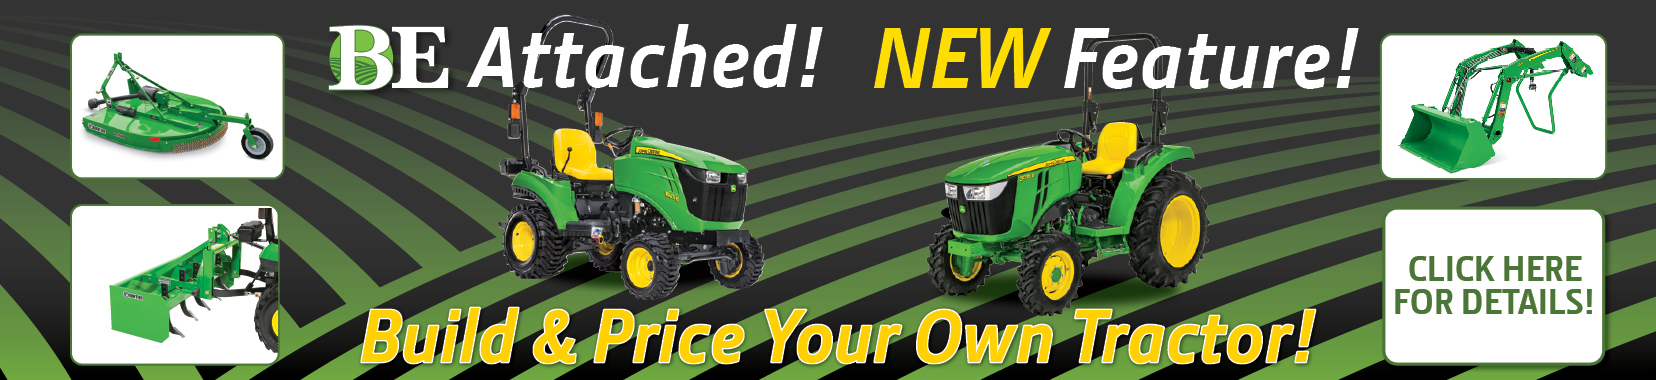 BE Attached! Build and Price Your Own Tractor at Blanchard Equipment.